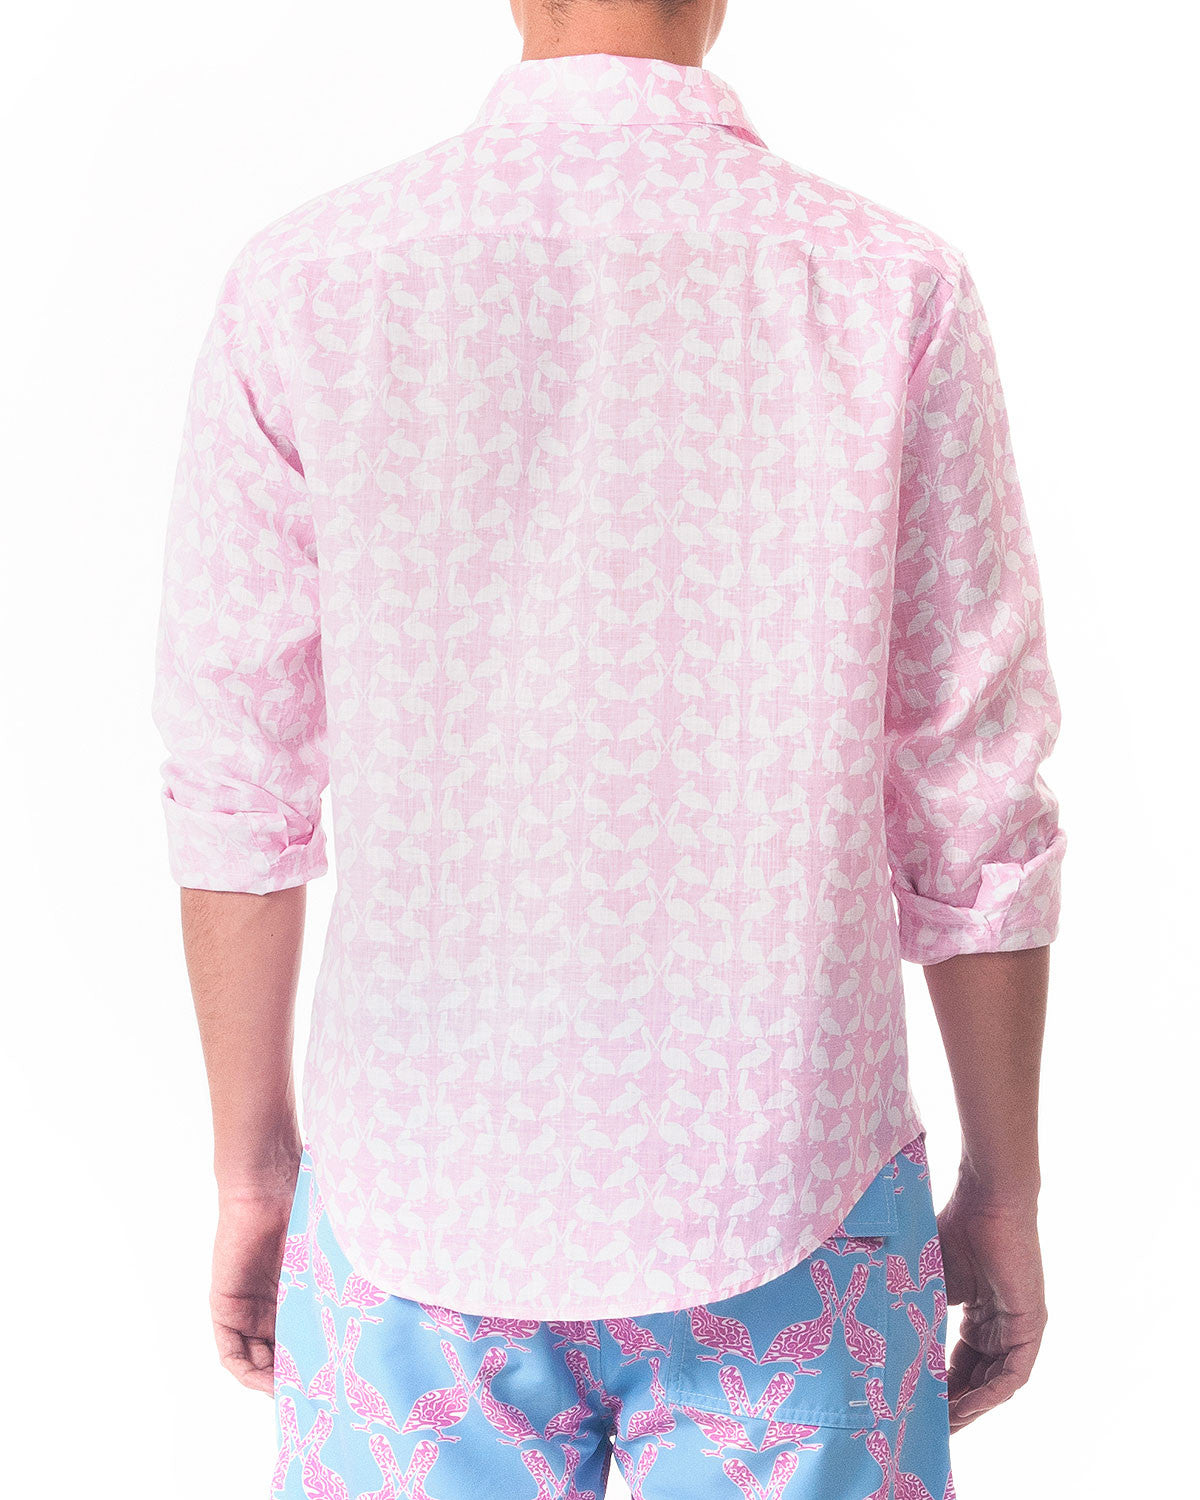 Mens Linen Shirt ~ Pelican (Pink) Back